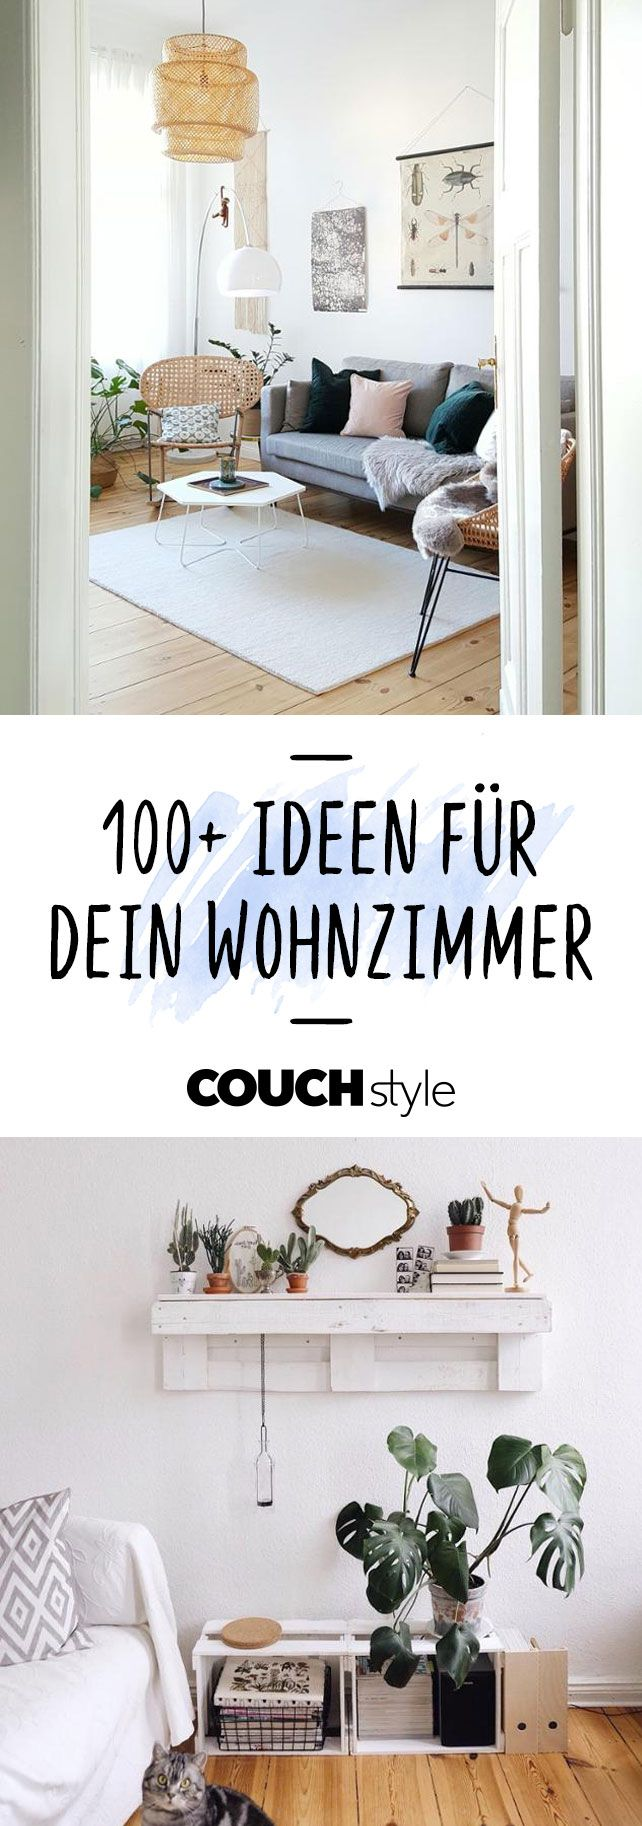 wohnzimmer bilder ideen sch ne sofas sch ne deko und sofa. Black Bedroom Furniture Sets. Home Design Ideas